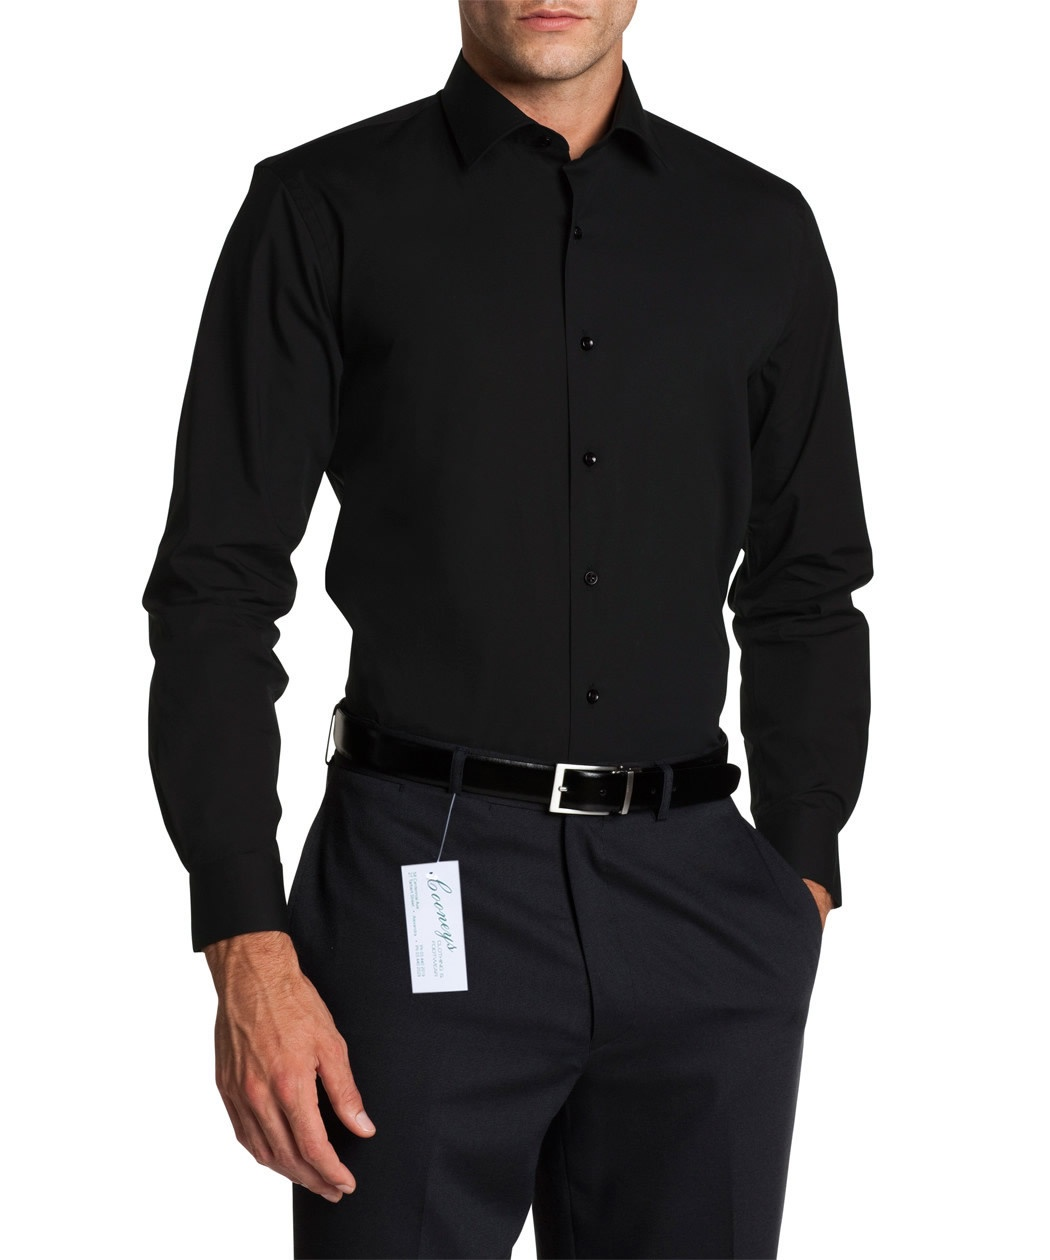 Van Heusen Flex Collar Slim Fit Shirts Summer Cook